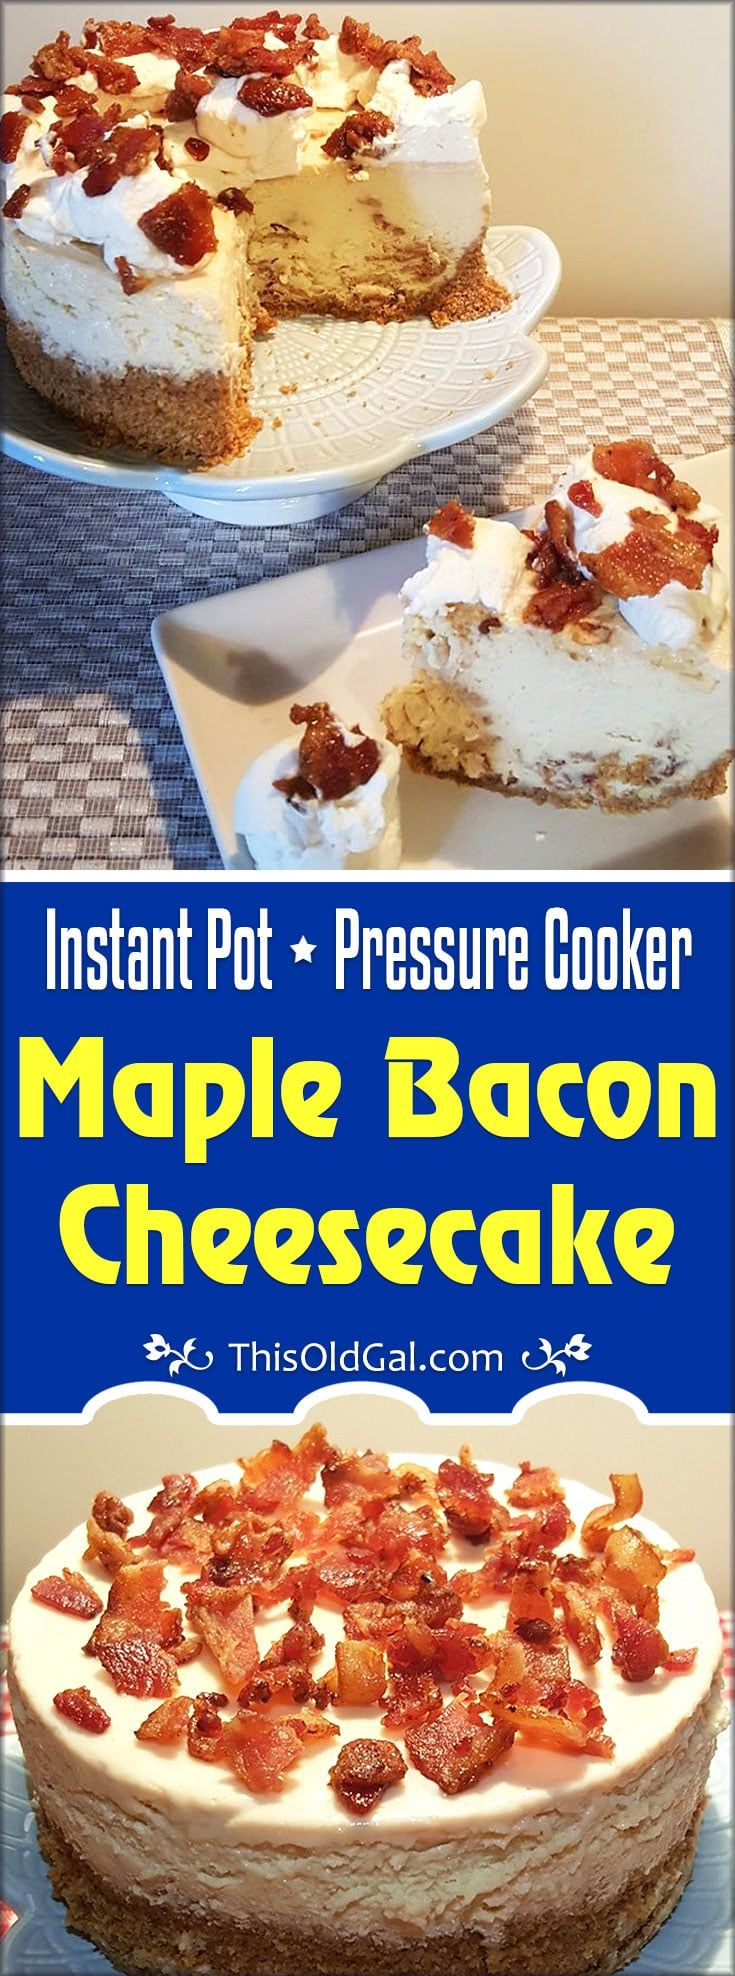 Pressure Cooker Maple Bacon Cheesecake is sweet and a bit salty and made with fresh Candied Maple Bacon and Pure Maple Syrup. via @thisoldgalcooks